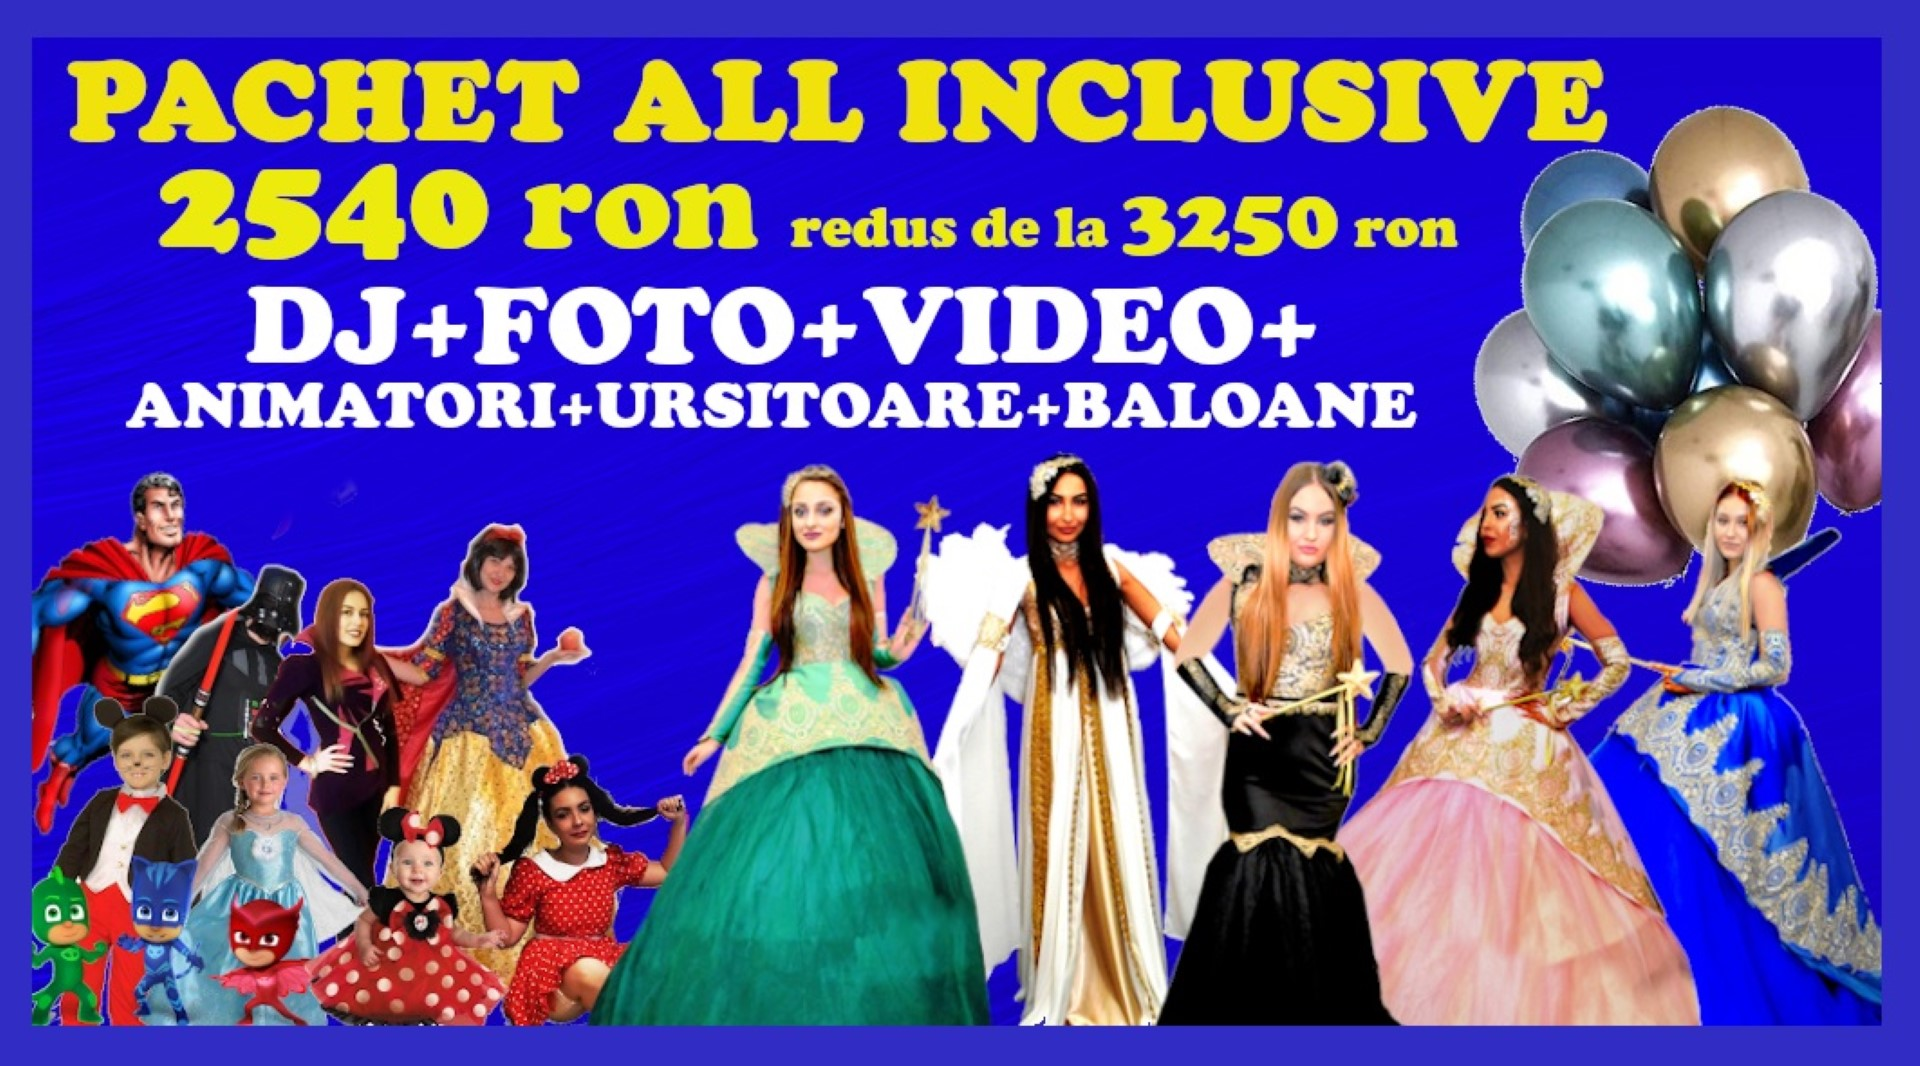 ALL INCLUSIVE (Large)